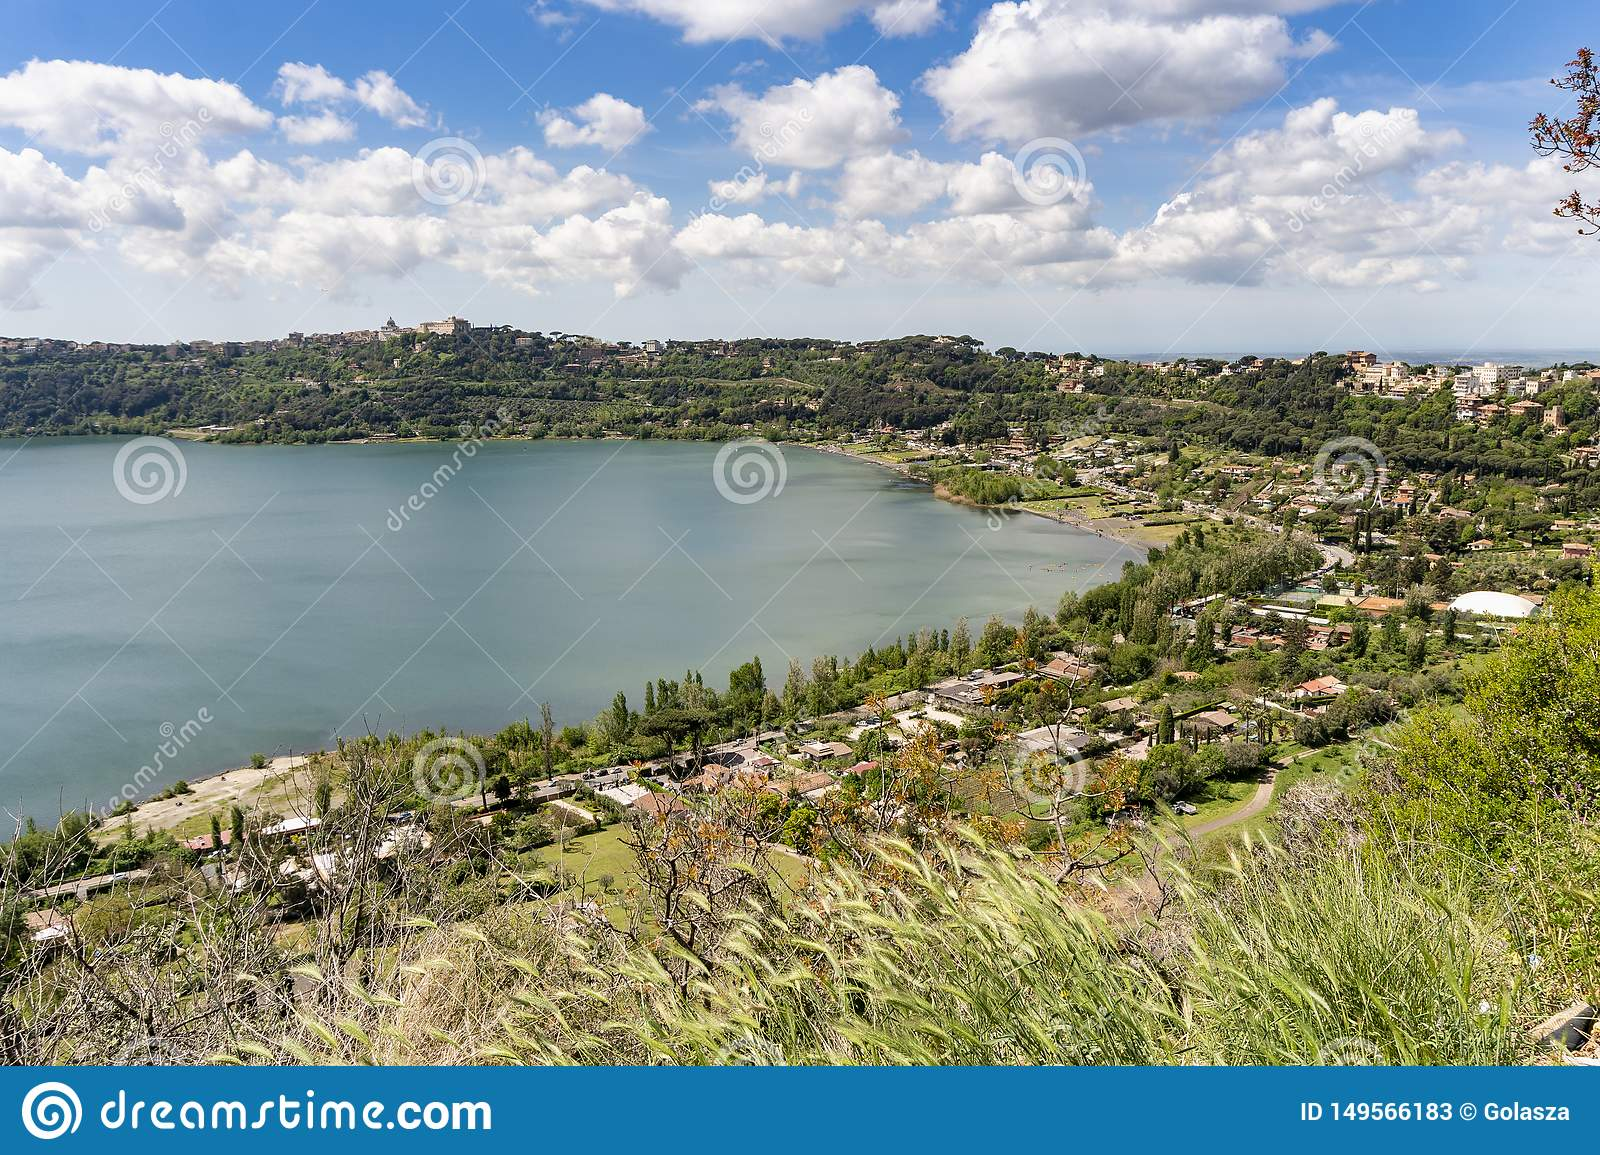 Castel Gandolfo town located by Albano lake, Lazio, Italy